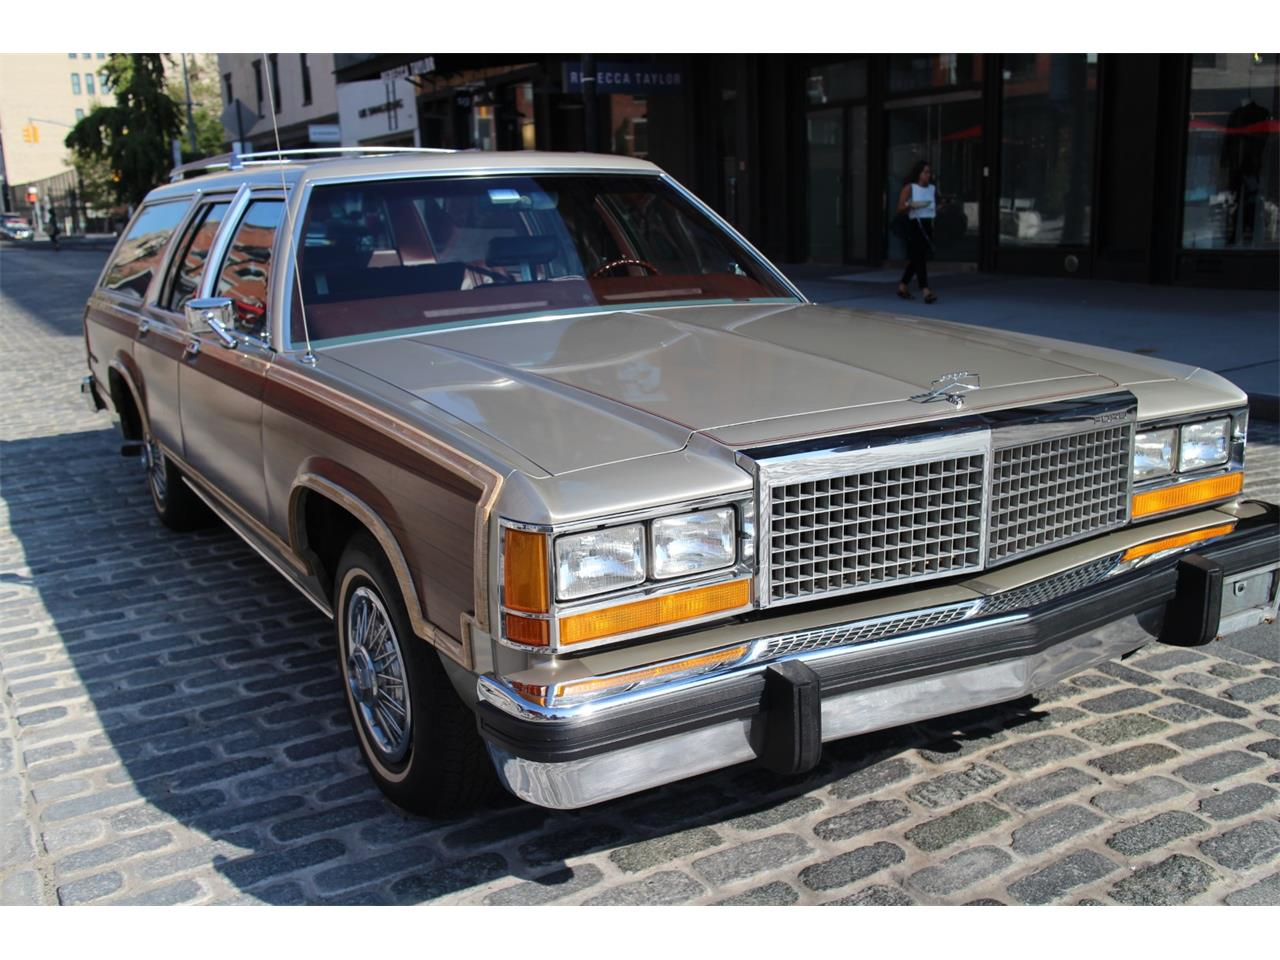 Large Picture of '81 LTD located in New York - $25,000.00 - R1S9